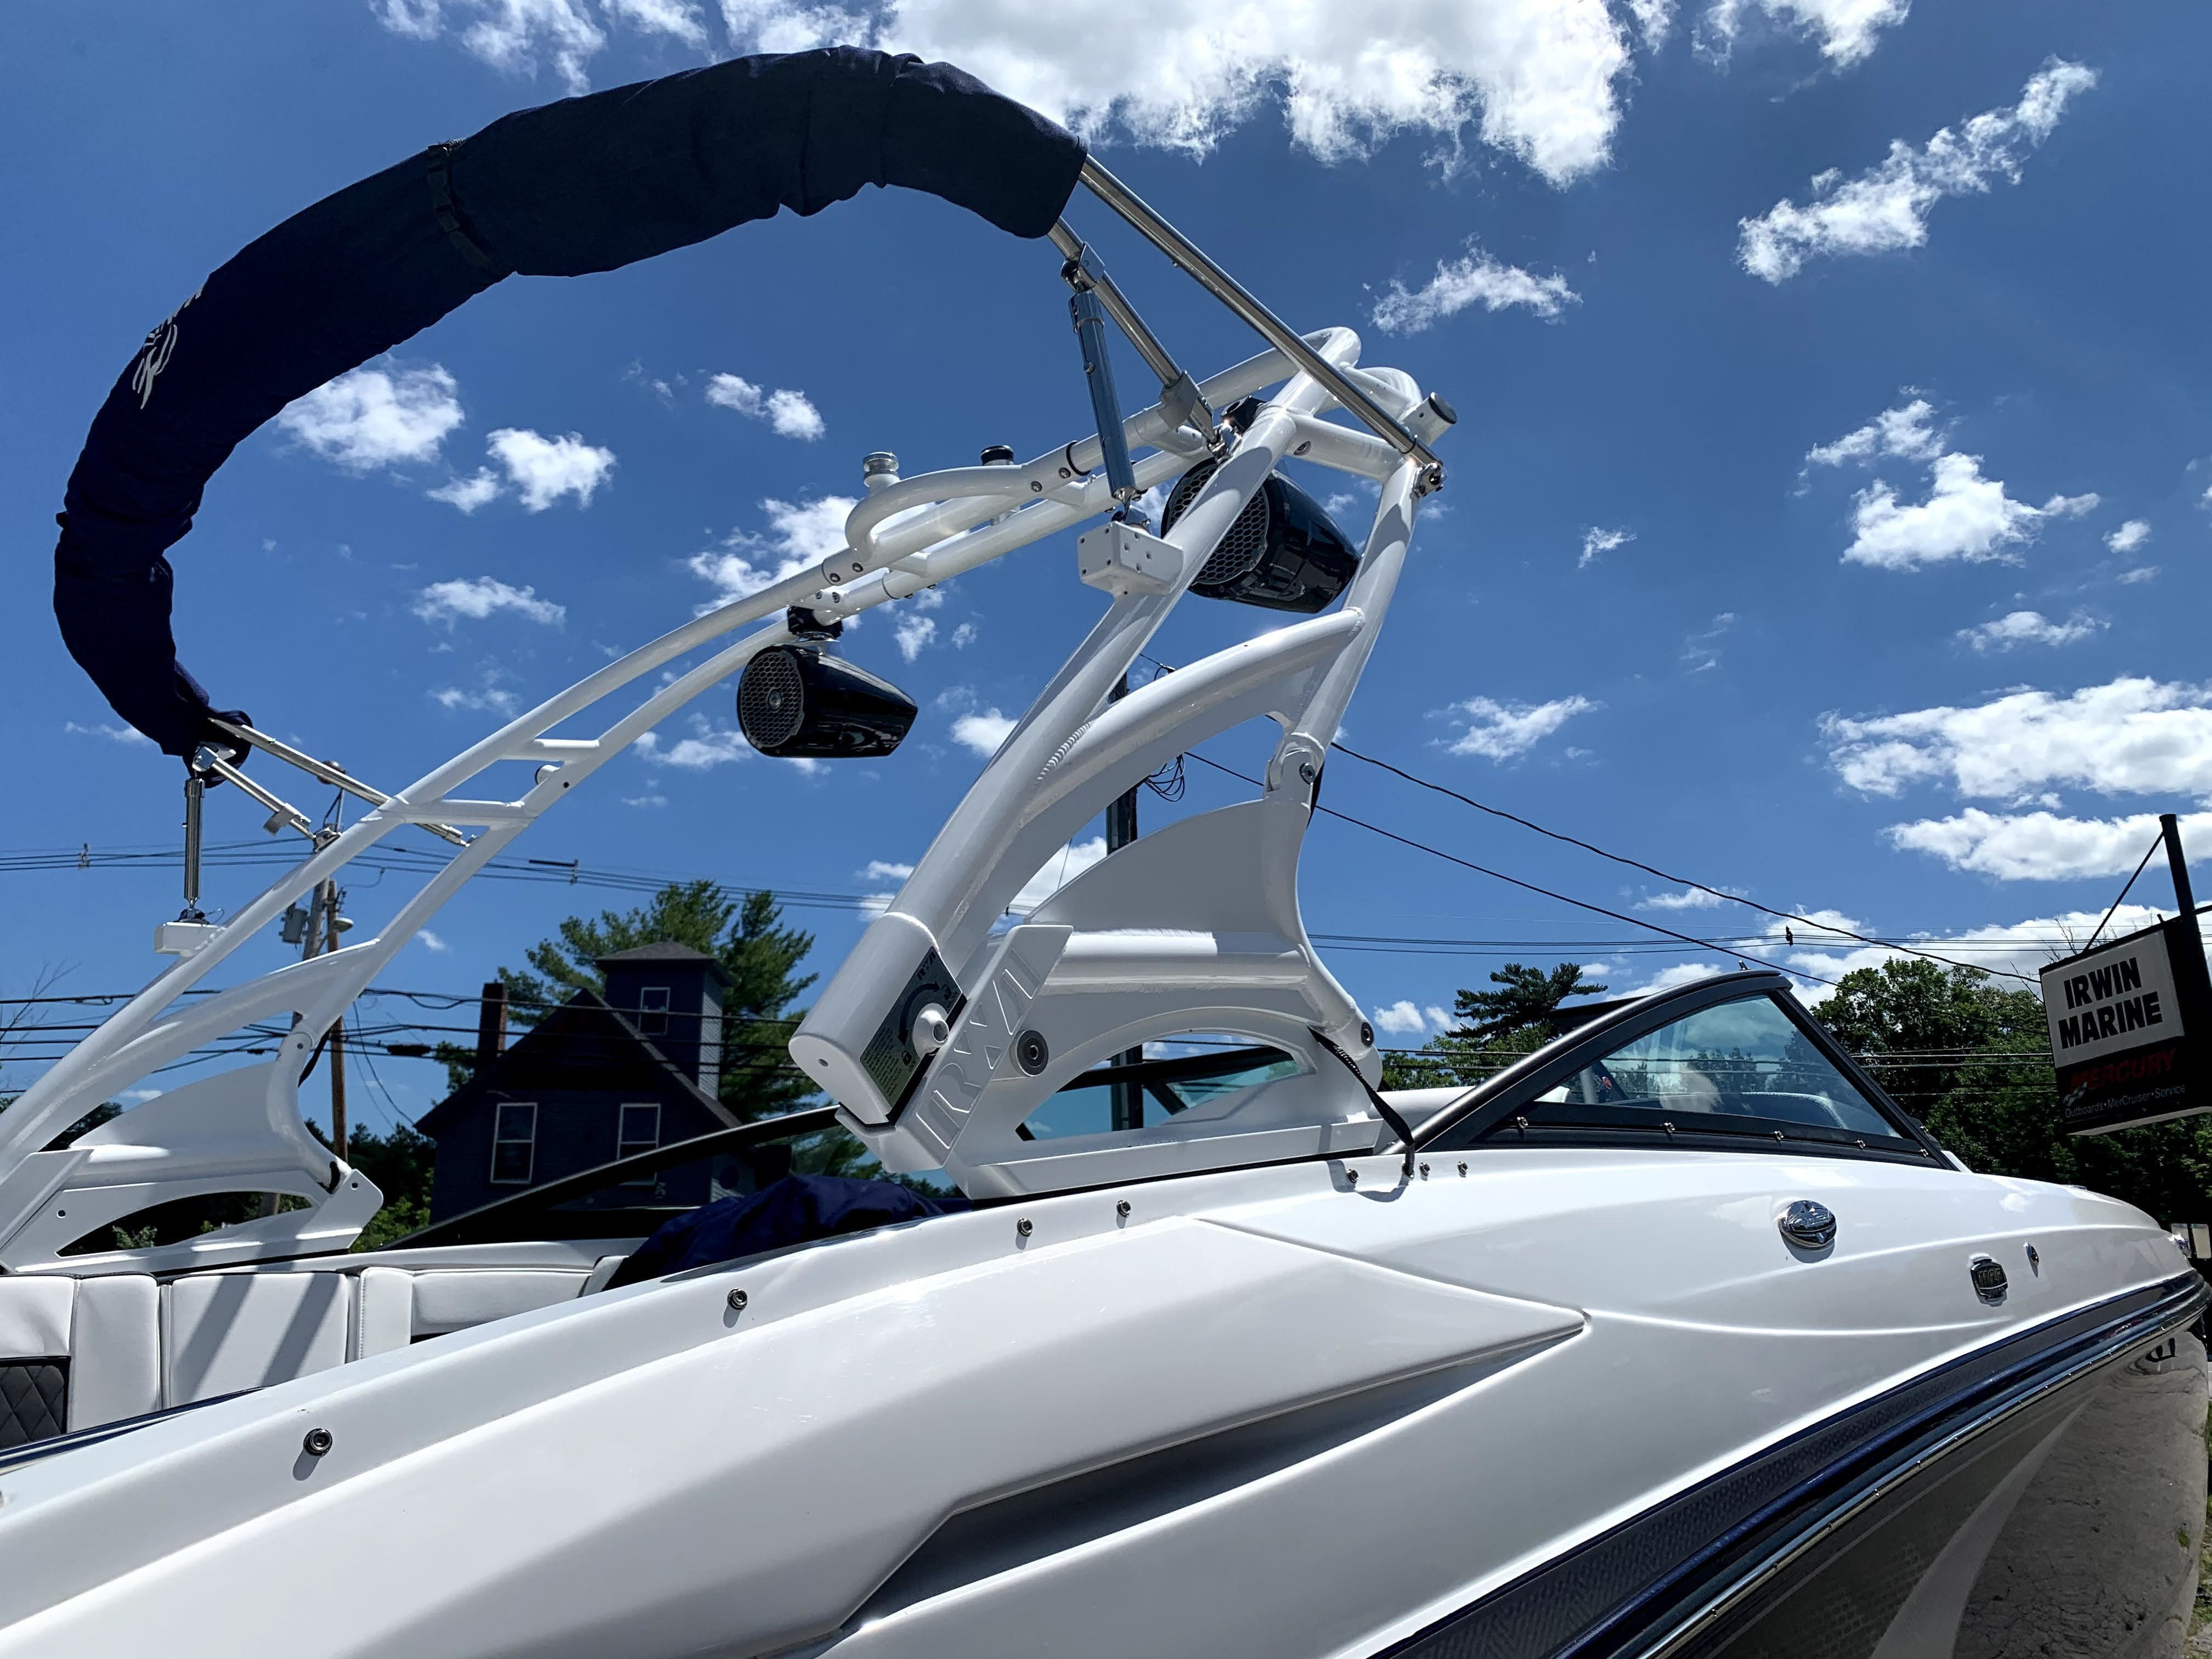 2021 Monterey boat for sale, model of the boat is M65 & Image # 10 of 12